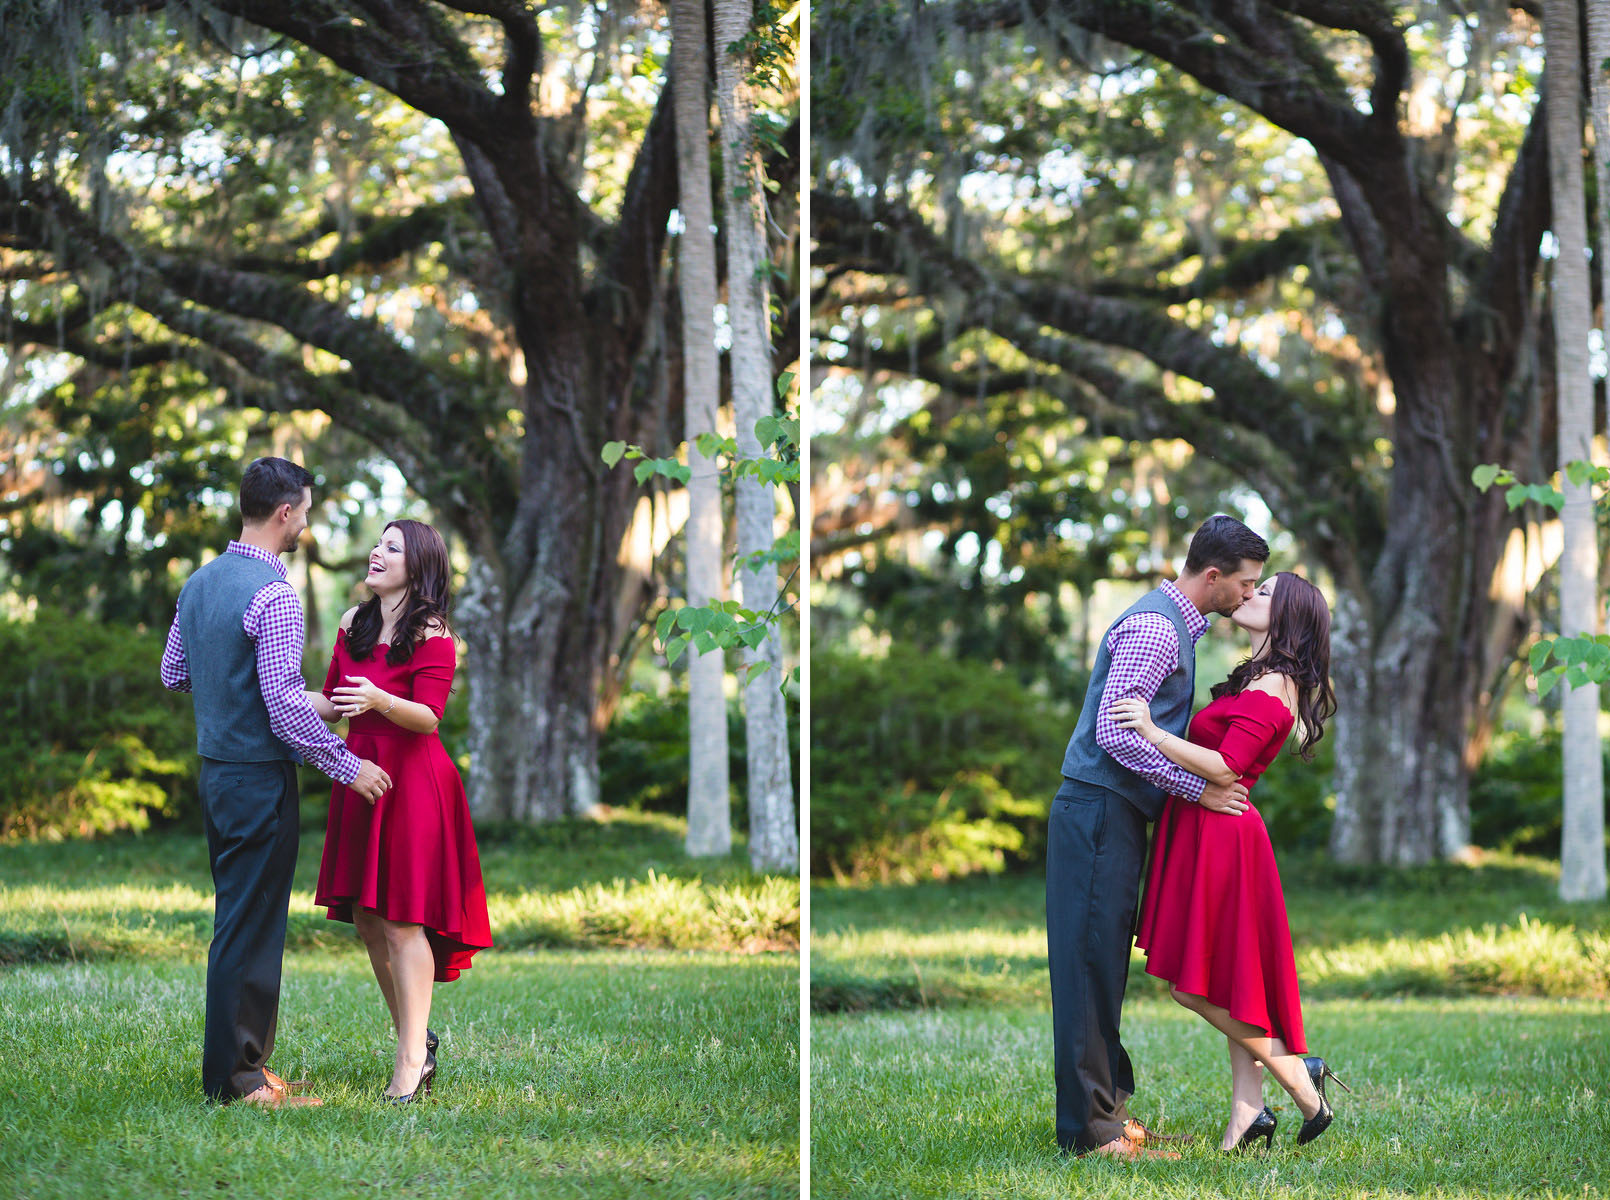 adam-szarmack-jacksonville-wedding-photographer-washington-oaks-gardens-state-park-engagement-19.jpg